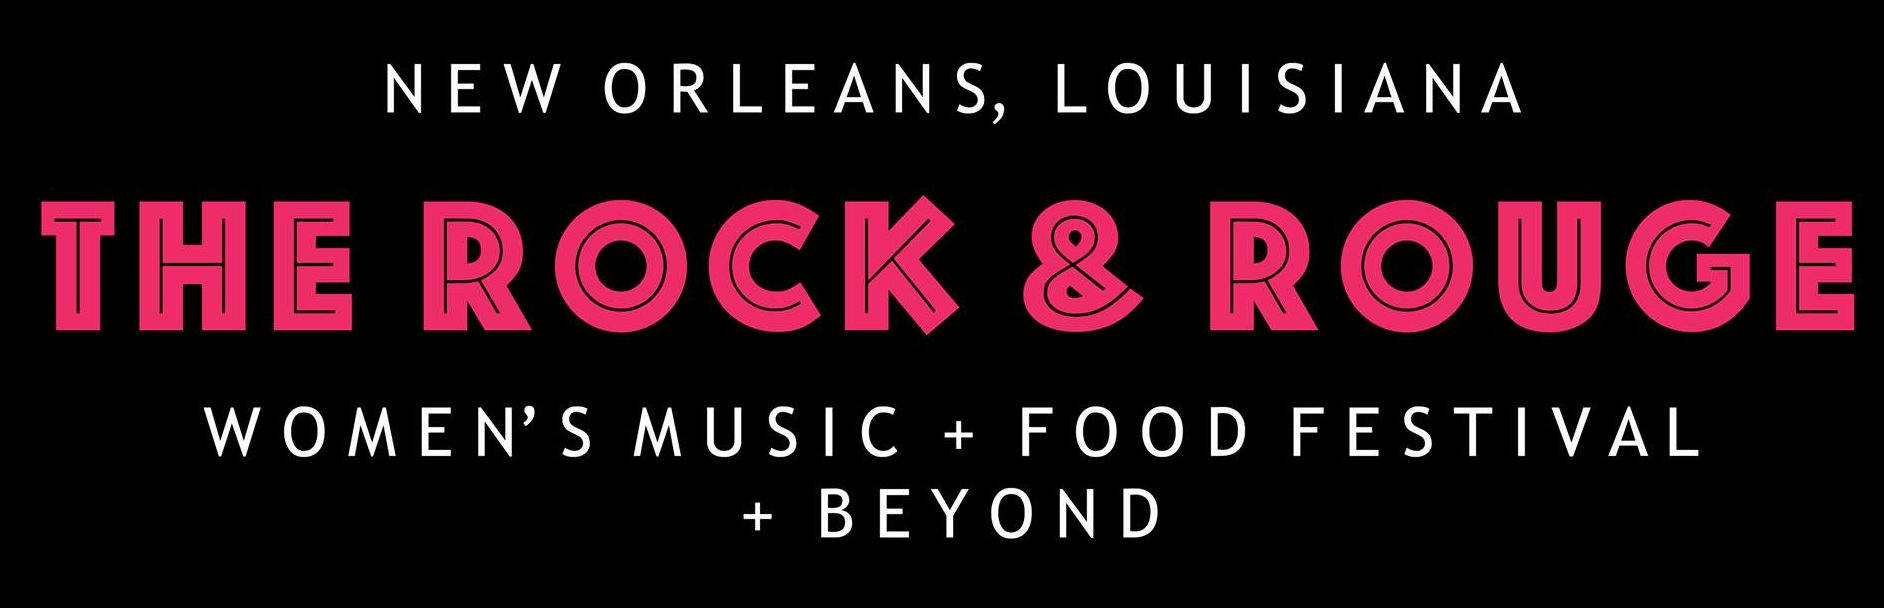 The Rock & Rouge Women's Music & Food Festival